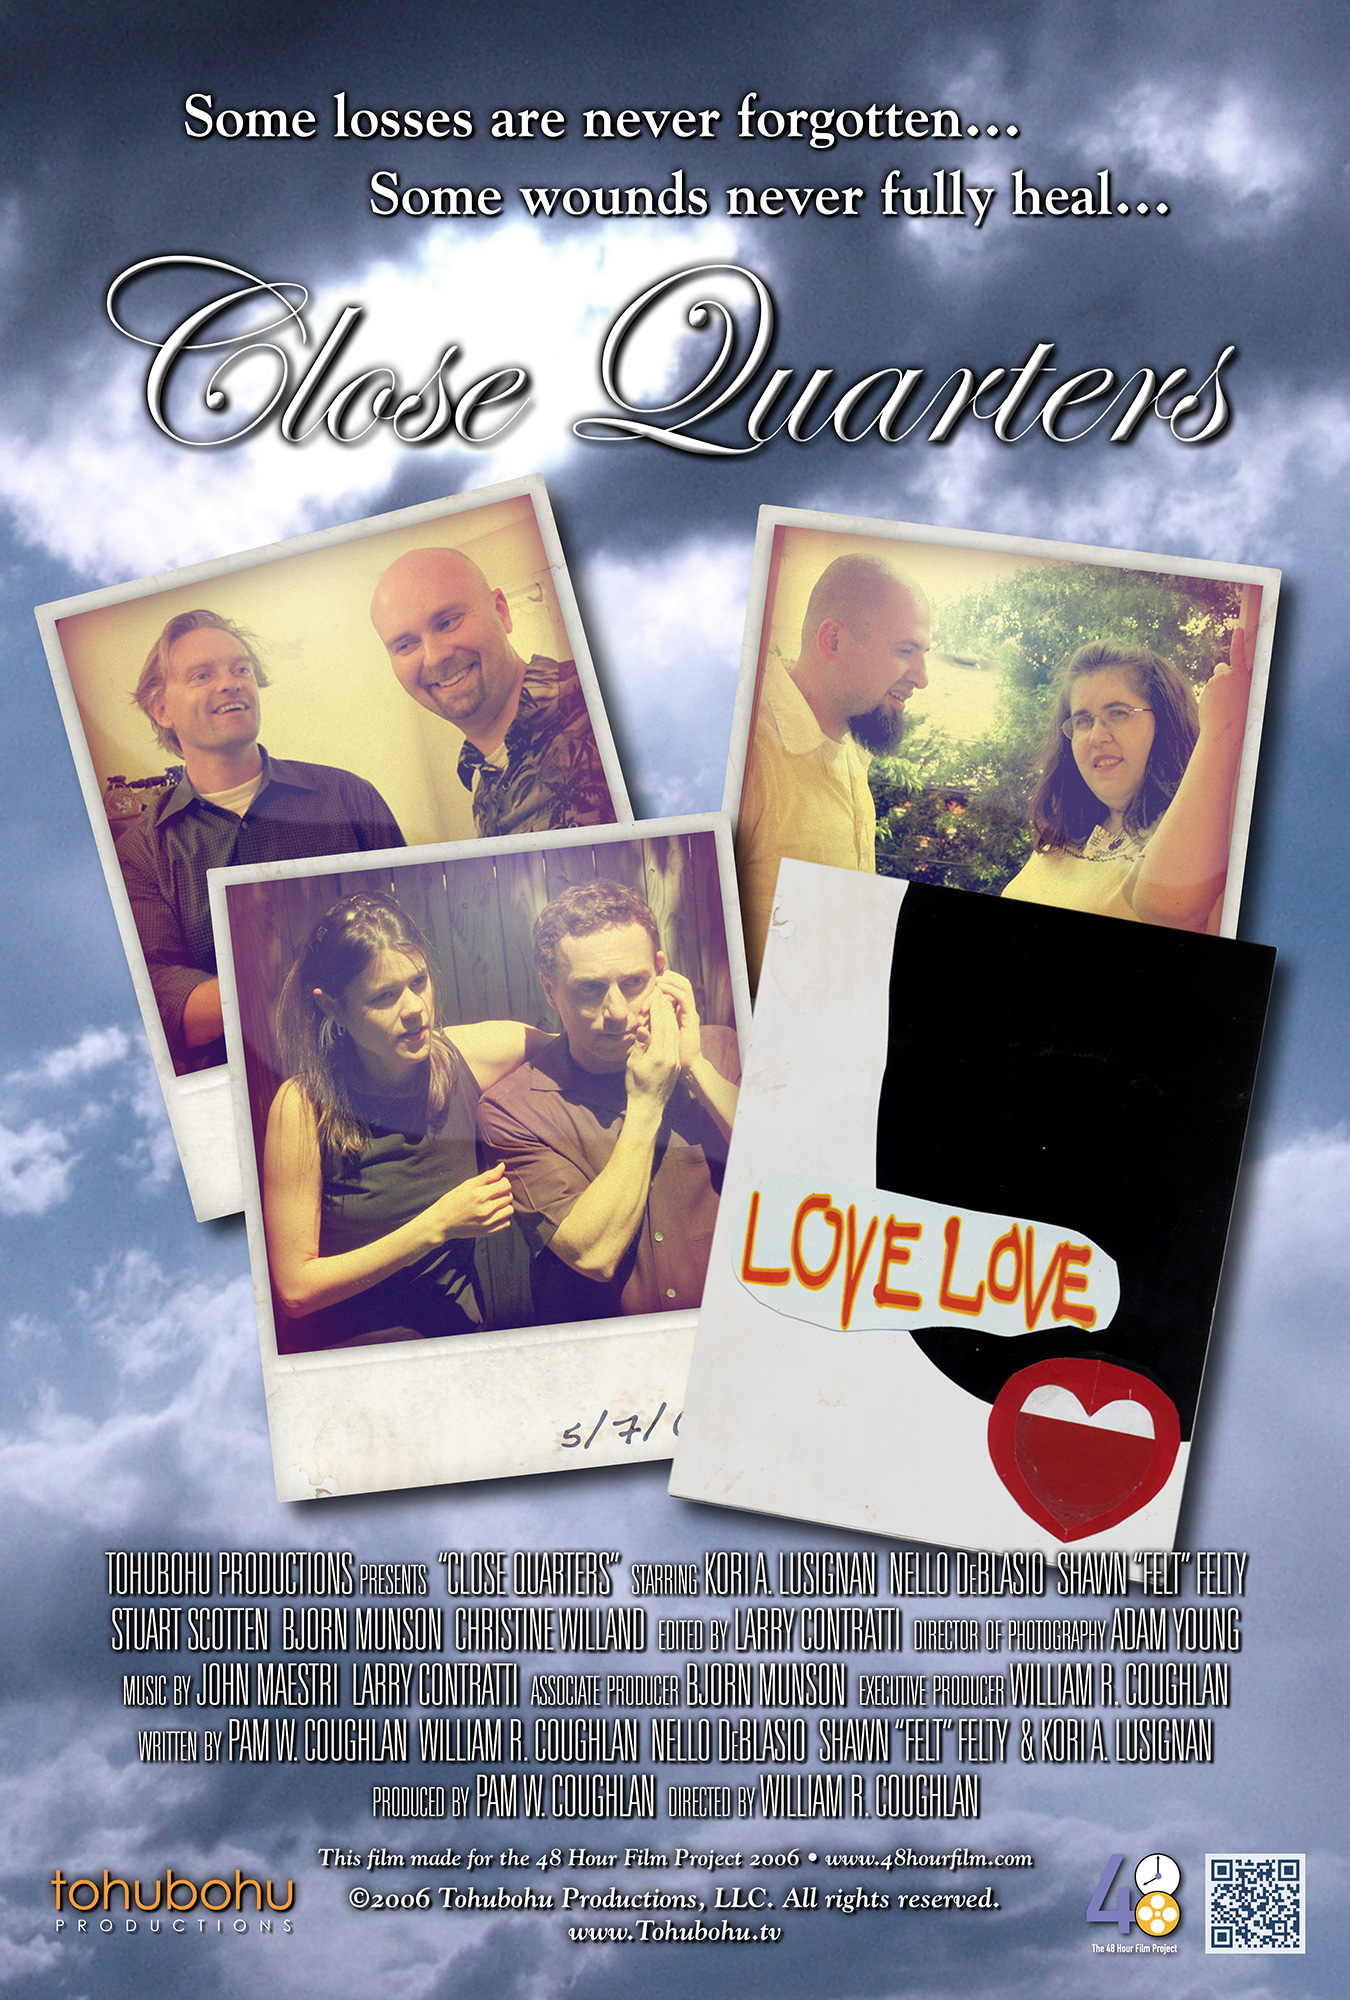 """Close Quarters - 2006 · 6:48 · written by Pam W. Coughlan, William R. Coughlan, Nello DeBlasio, Shawn """"Felt"""" Felty & Kori A. Lusignan · produced by Pam W. Coughlan · directed by William R. CoughlanEvery Sunday, a group of close friends gets together for a backyard barbecue. But one day, Smitty decides to bring along his new girlfriend — and everyone is shocked to discover that she looks strikingly similar to Samantha, another friend who died several years ago. As the afternoon progresses, each of the friends must not only deal with the new addition to their little circle, but confront the ghosts of their own past relationships — resulting in unplanned revelations.Once again, Tohubohu Productions returned to the 48 Hour Film Project with """"Close Quarters"""" — a drama (a brand-new genre for the 2006 competition) produced entirely over the weekend of May 5–May 7. Frequent Tohubohu director William R. Coughlan returned to helm the effort, and Pam W. Coughlan (who had previously appeared in """"Schlimmer,"""" """"Screening Process,"""" and """"The Big Lie,"""" as well as producing """"A Birthday Movie""""), took on the producer's role. The short premiered at the AFI Silver Theatre on Friday, May 12, 2006."""